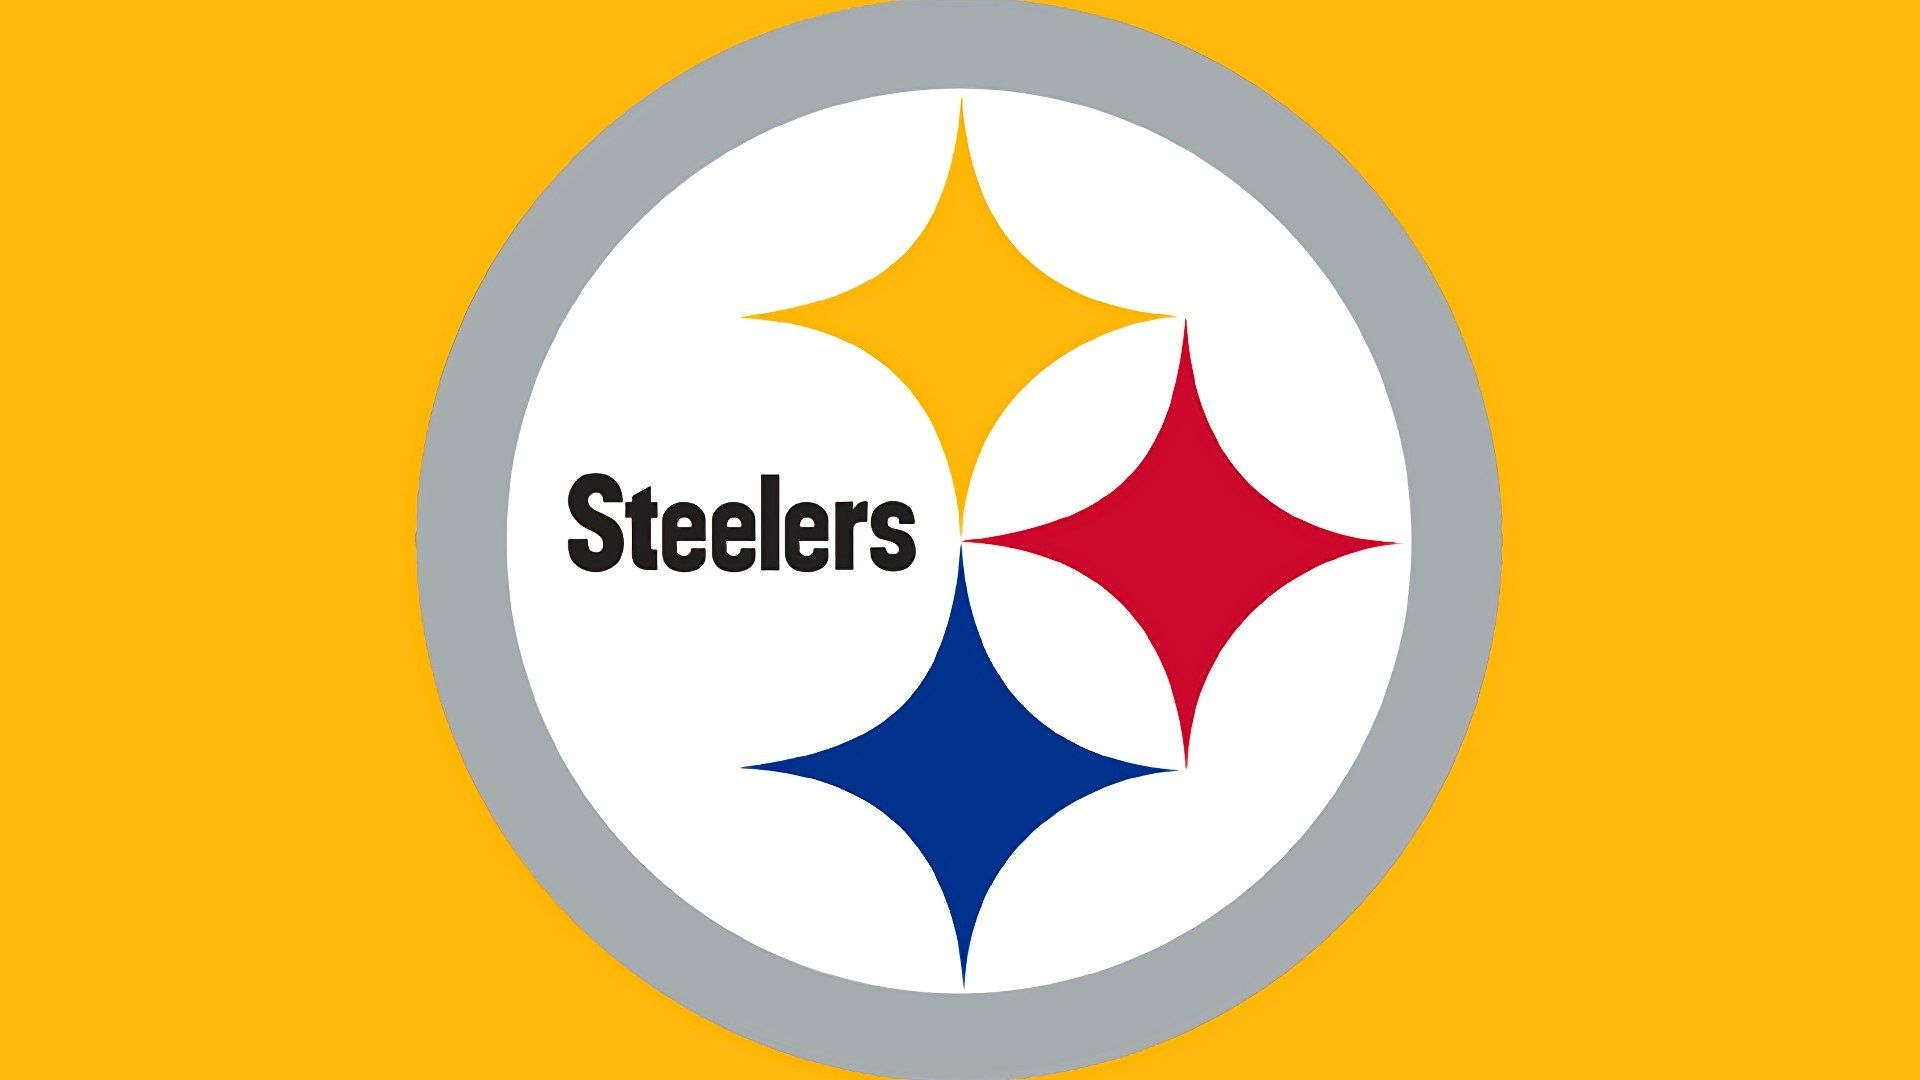 Steelers Logo Wallpaper Pittsburgh steelers logo